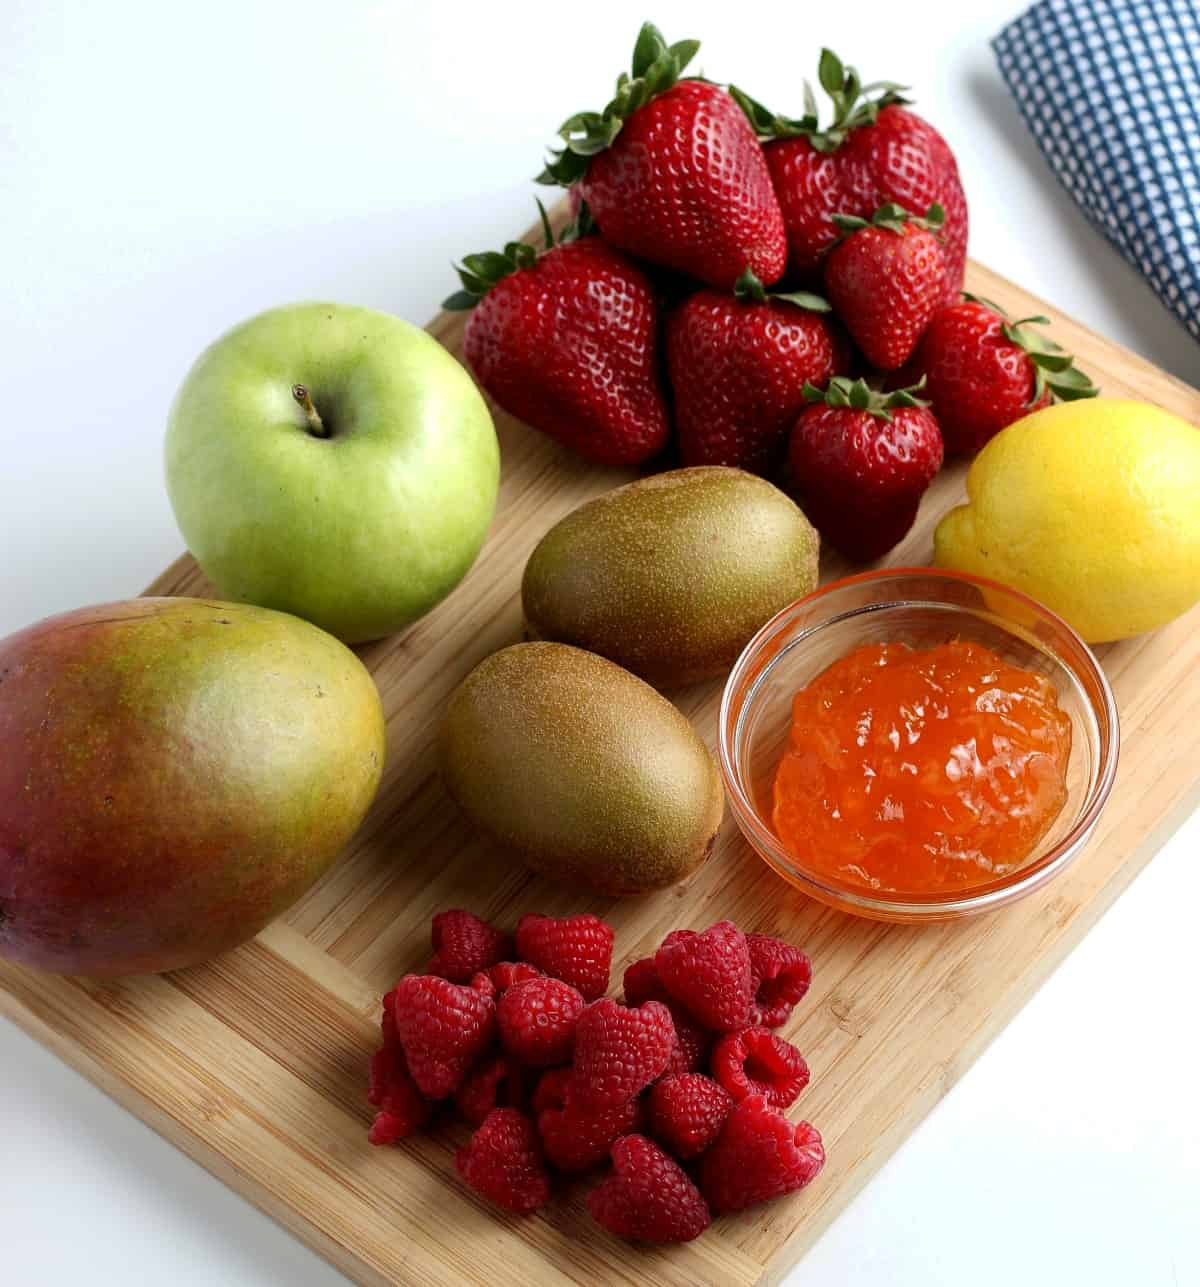 Overhead view of piles of 6 different fruit varieties on a wooden cutting board.